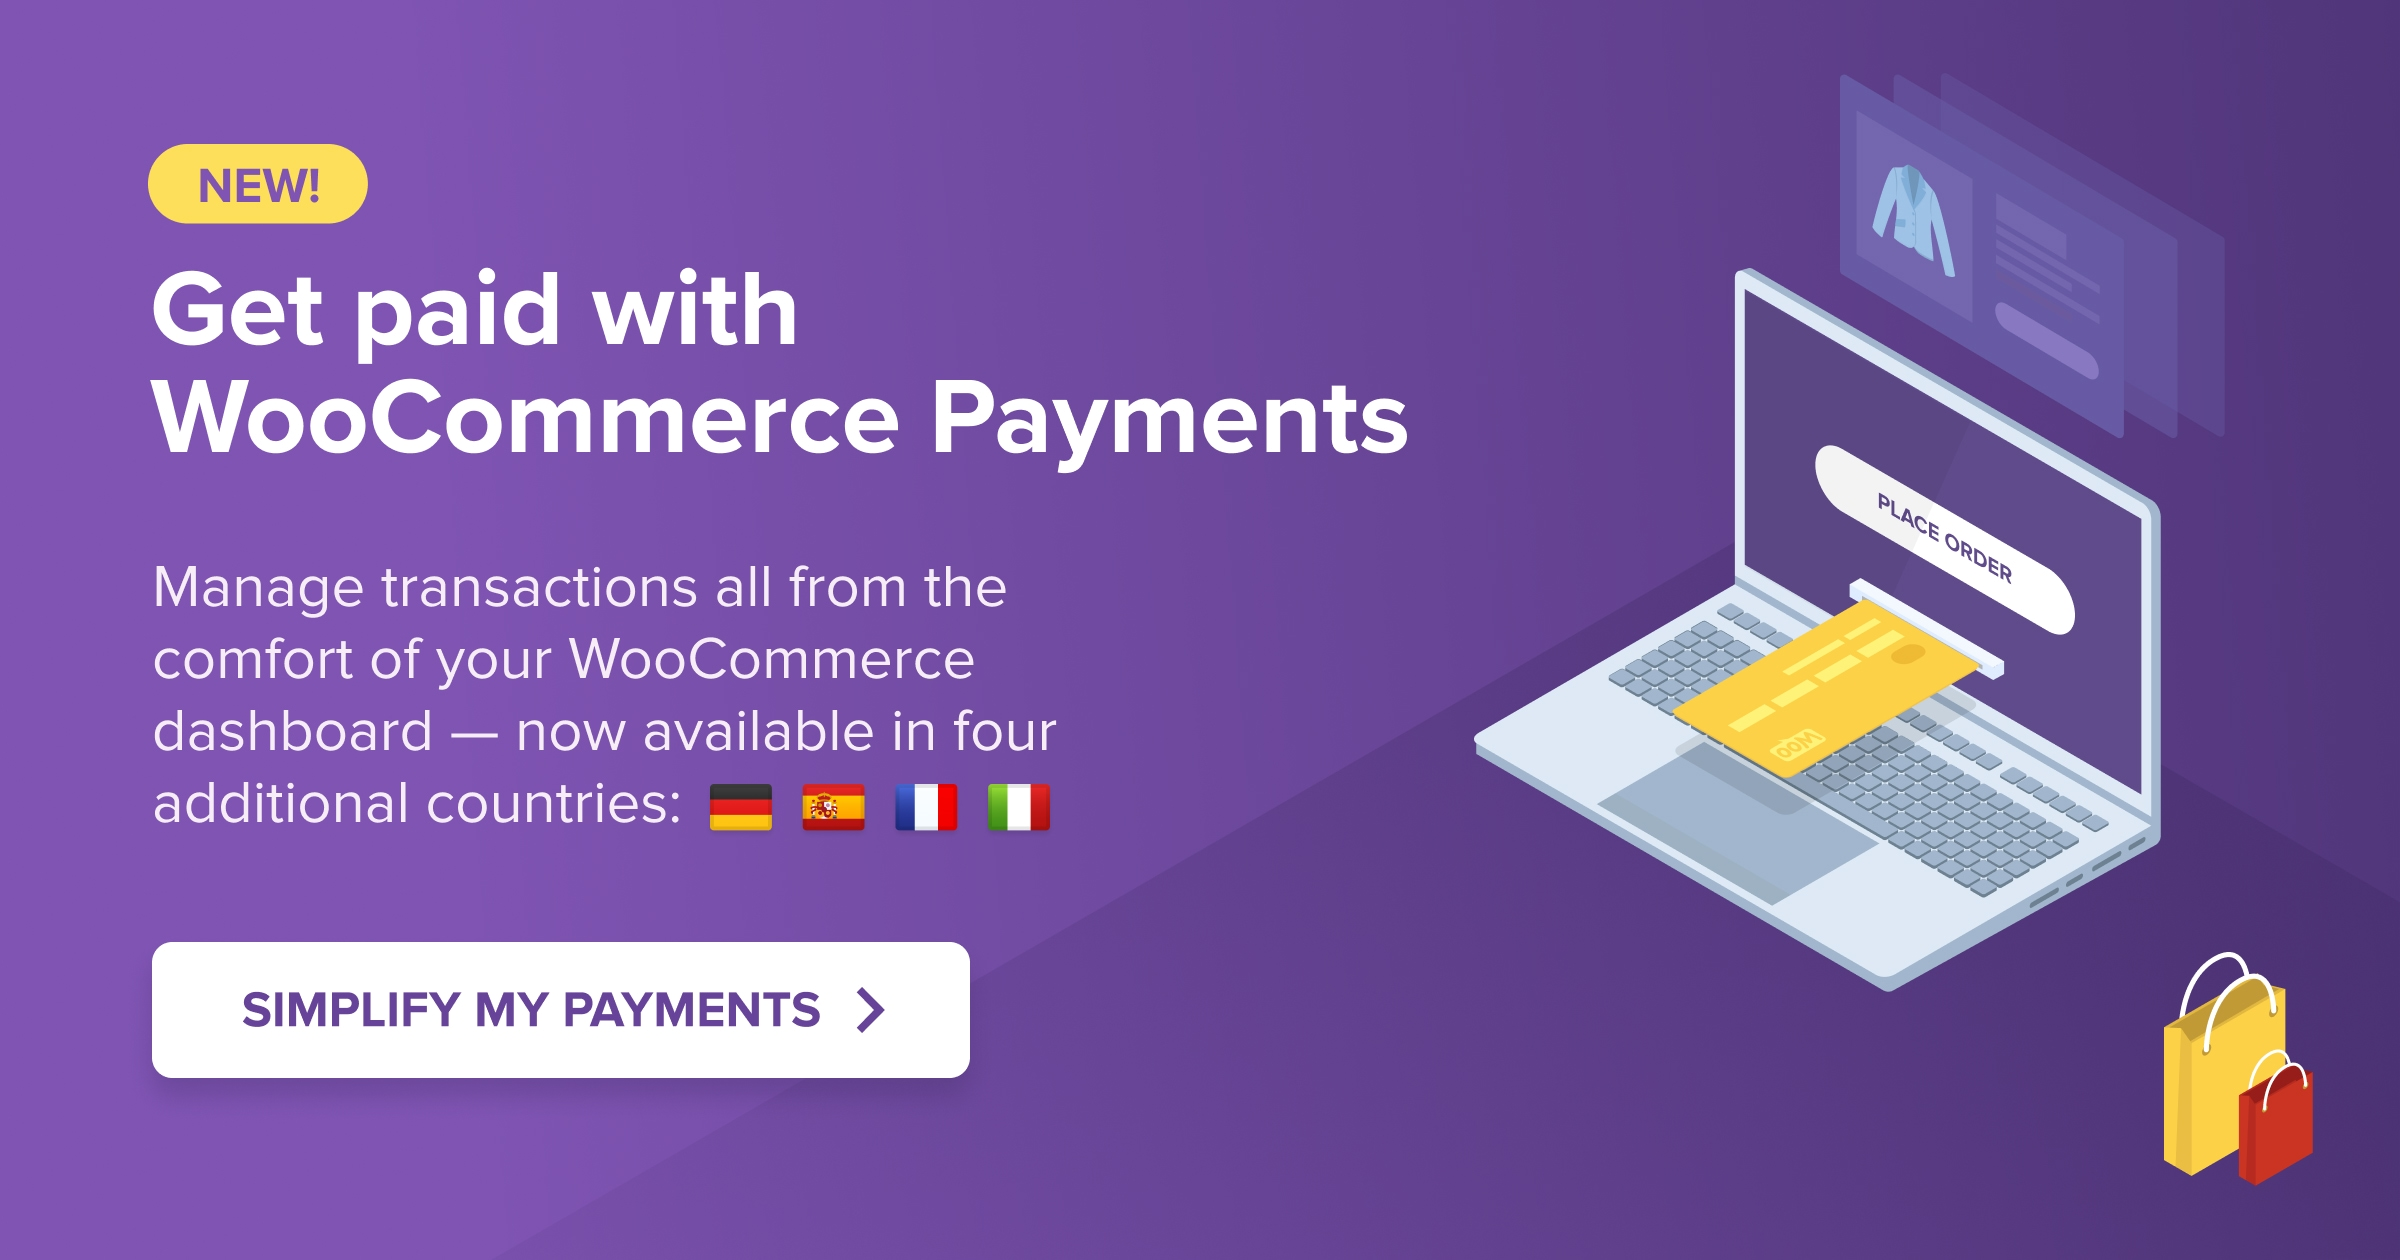 Get WooCommerce Payments